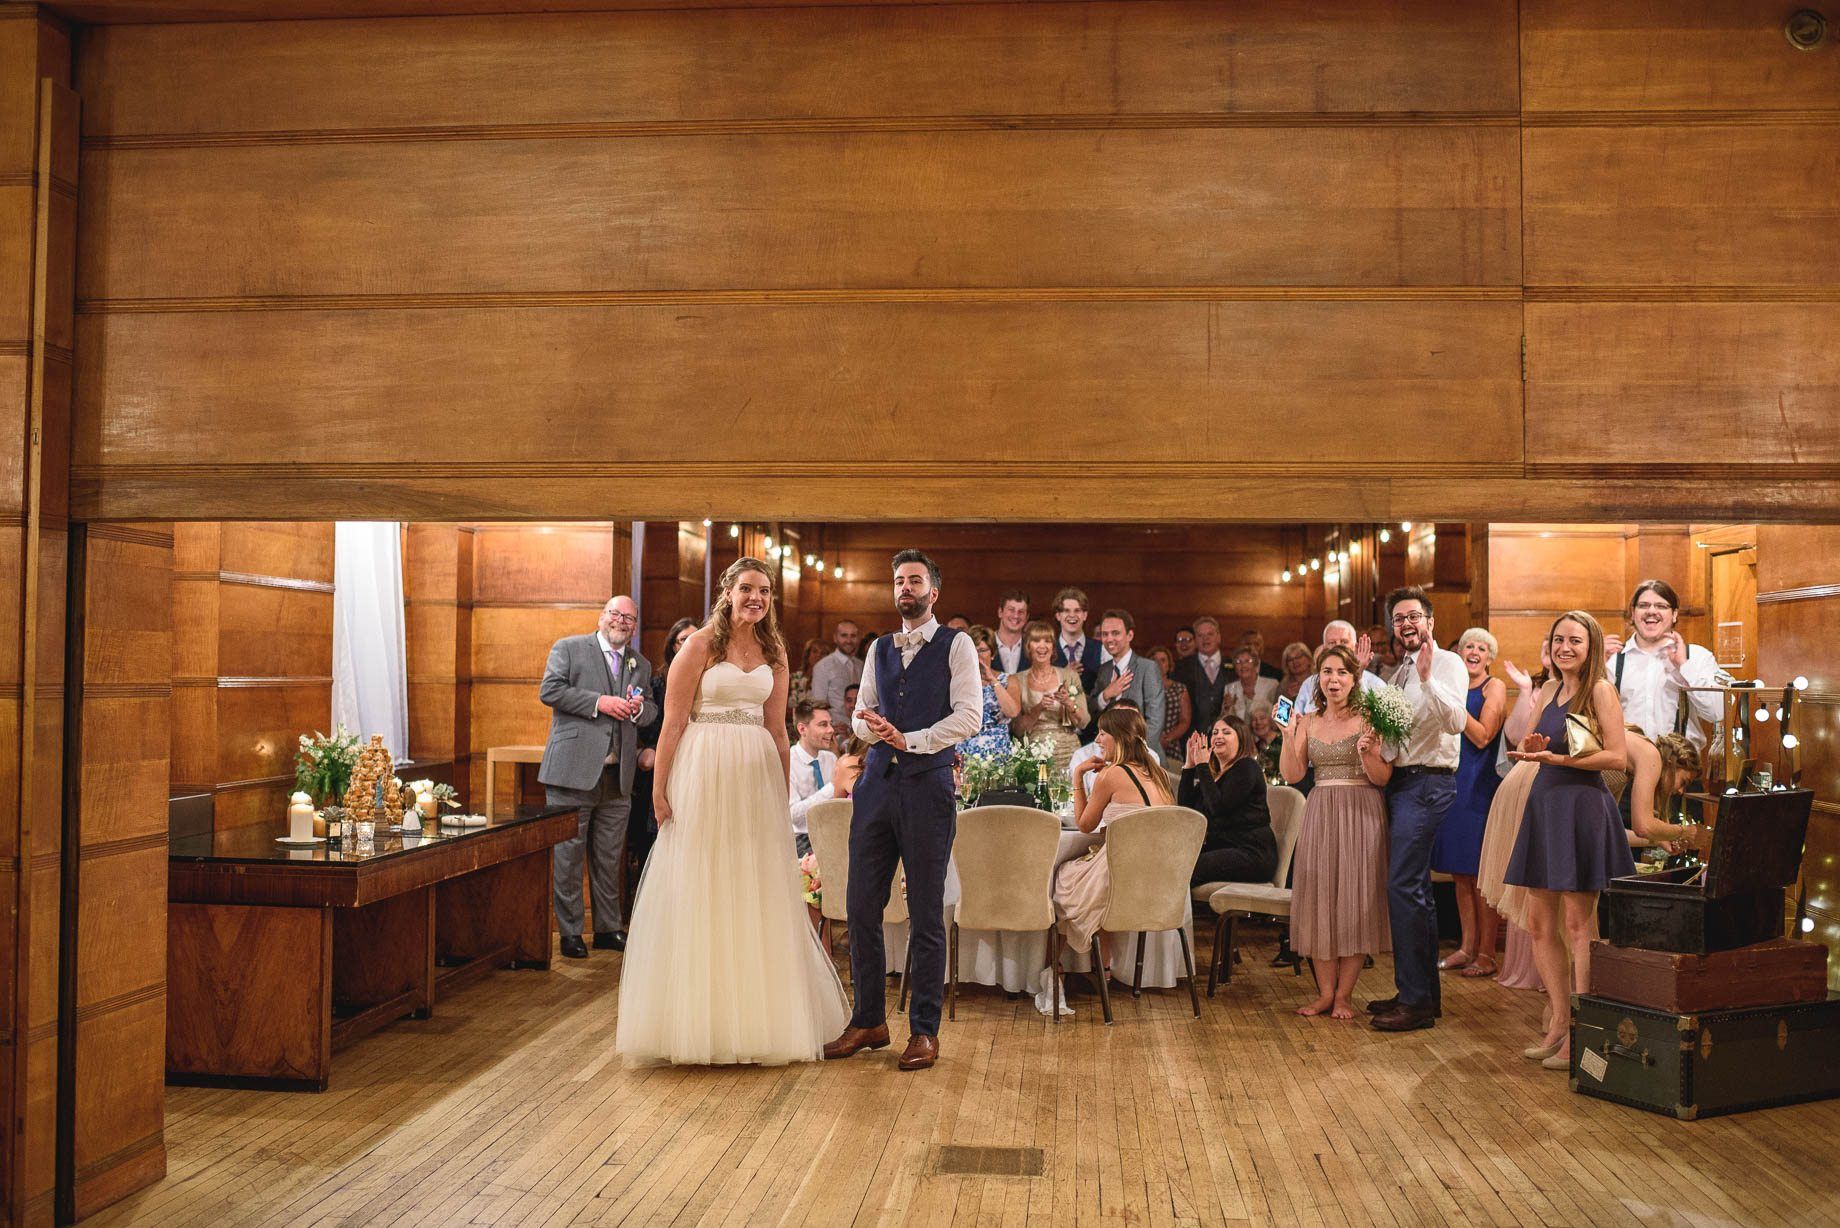 London Wedding Photography - Guy Collier Photography - LJ + Russell (146 of 155)